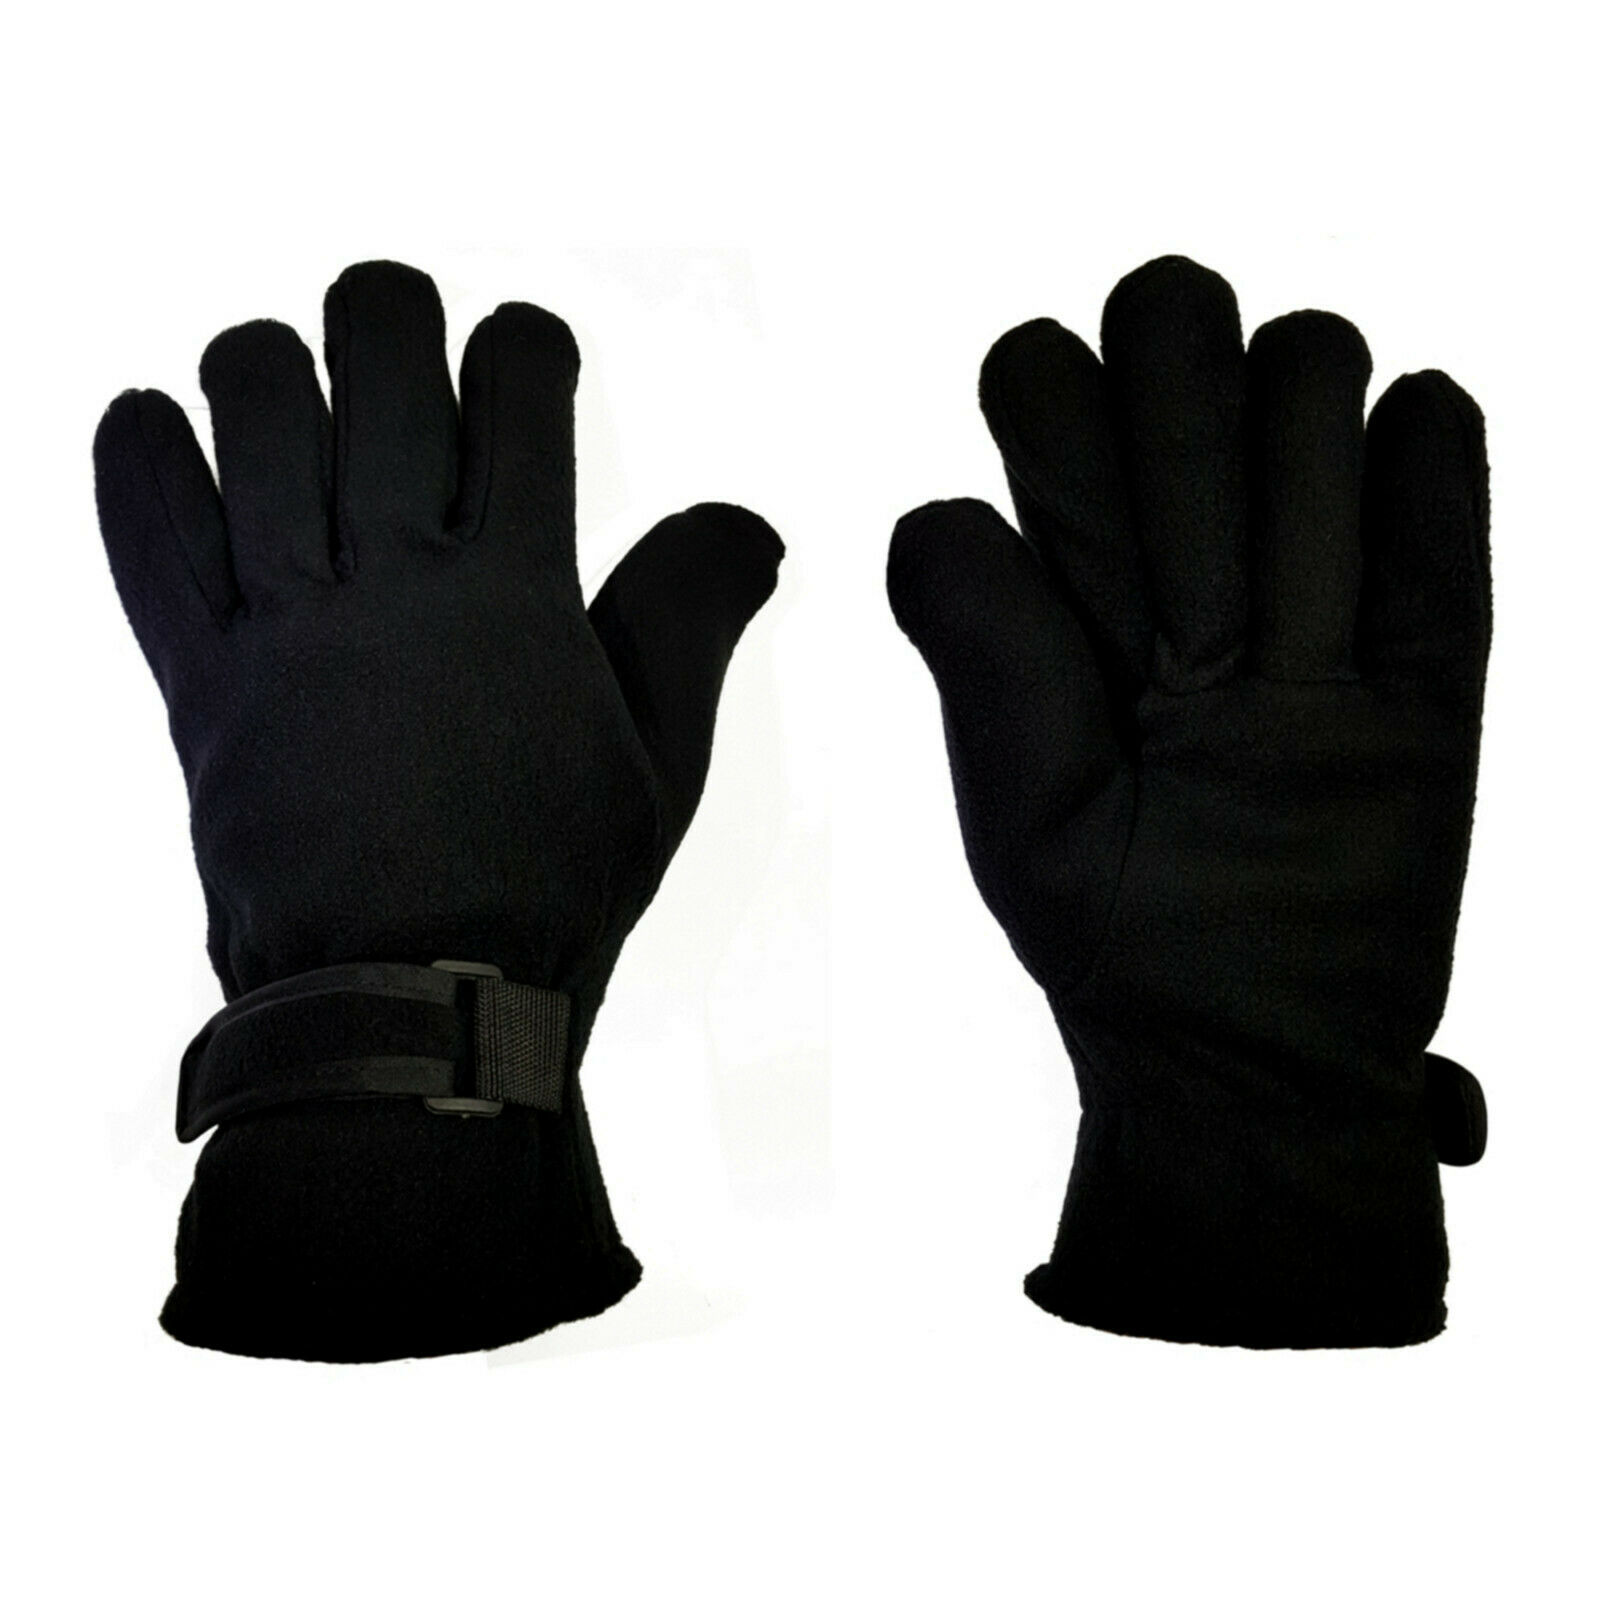 Mens Insulated Fleece Gloves Thermal Soft Extra Warm Velco Straps Winter Gloves